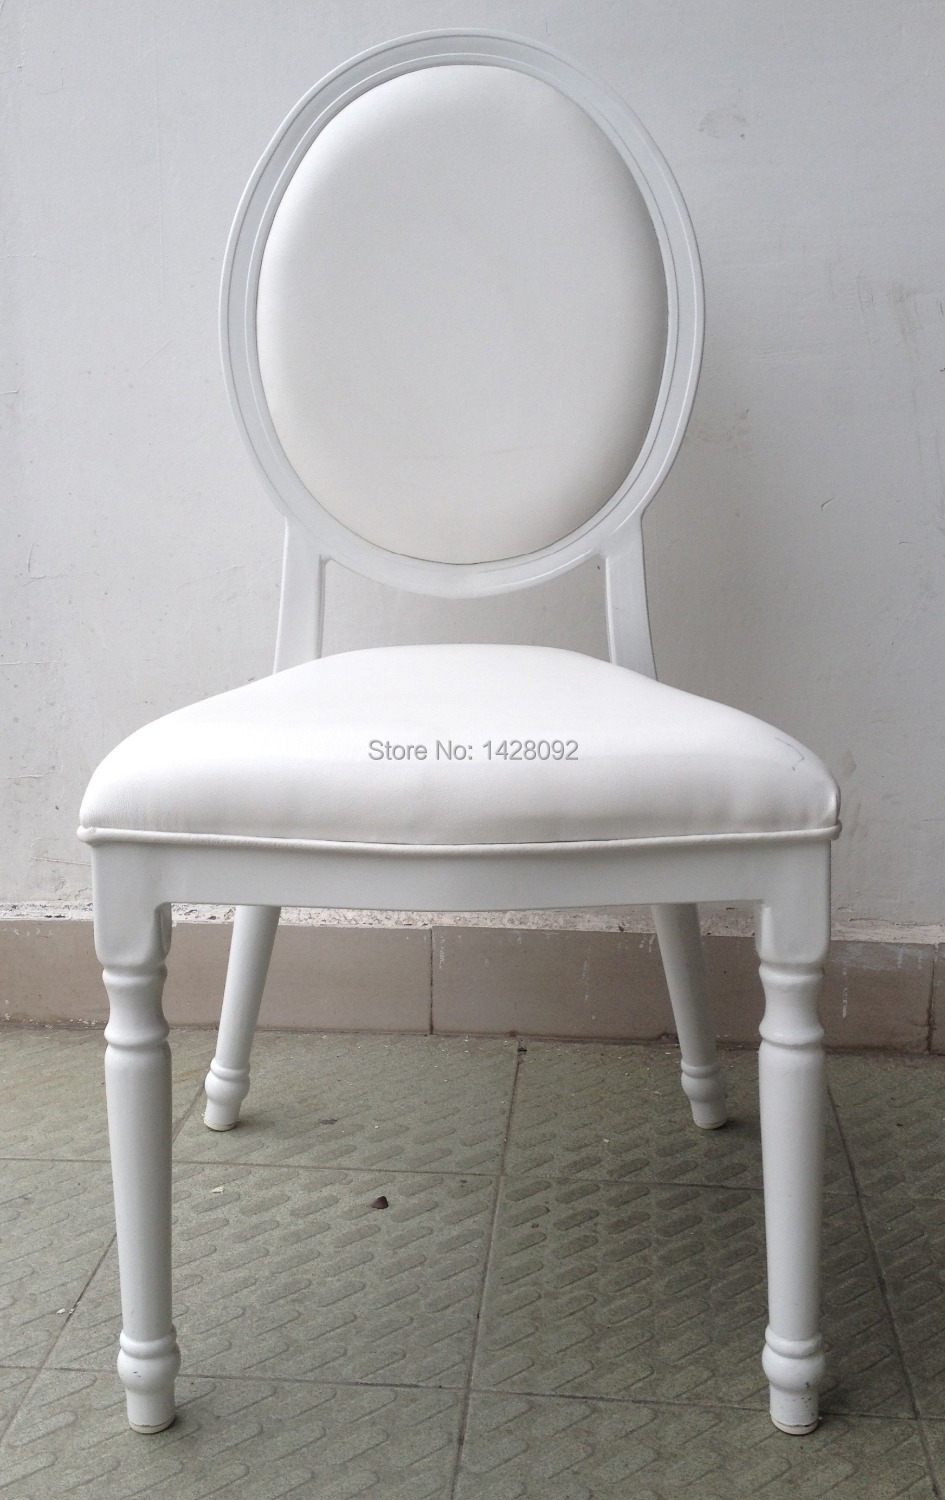 White Upholstered Aluminum Hotel Wedding Chair LQ-L9999